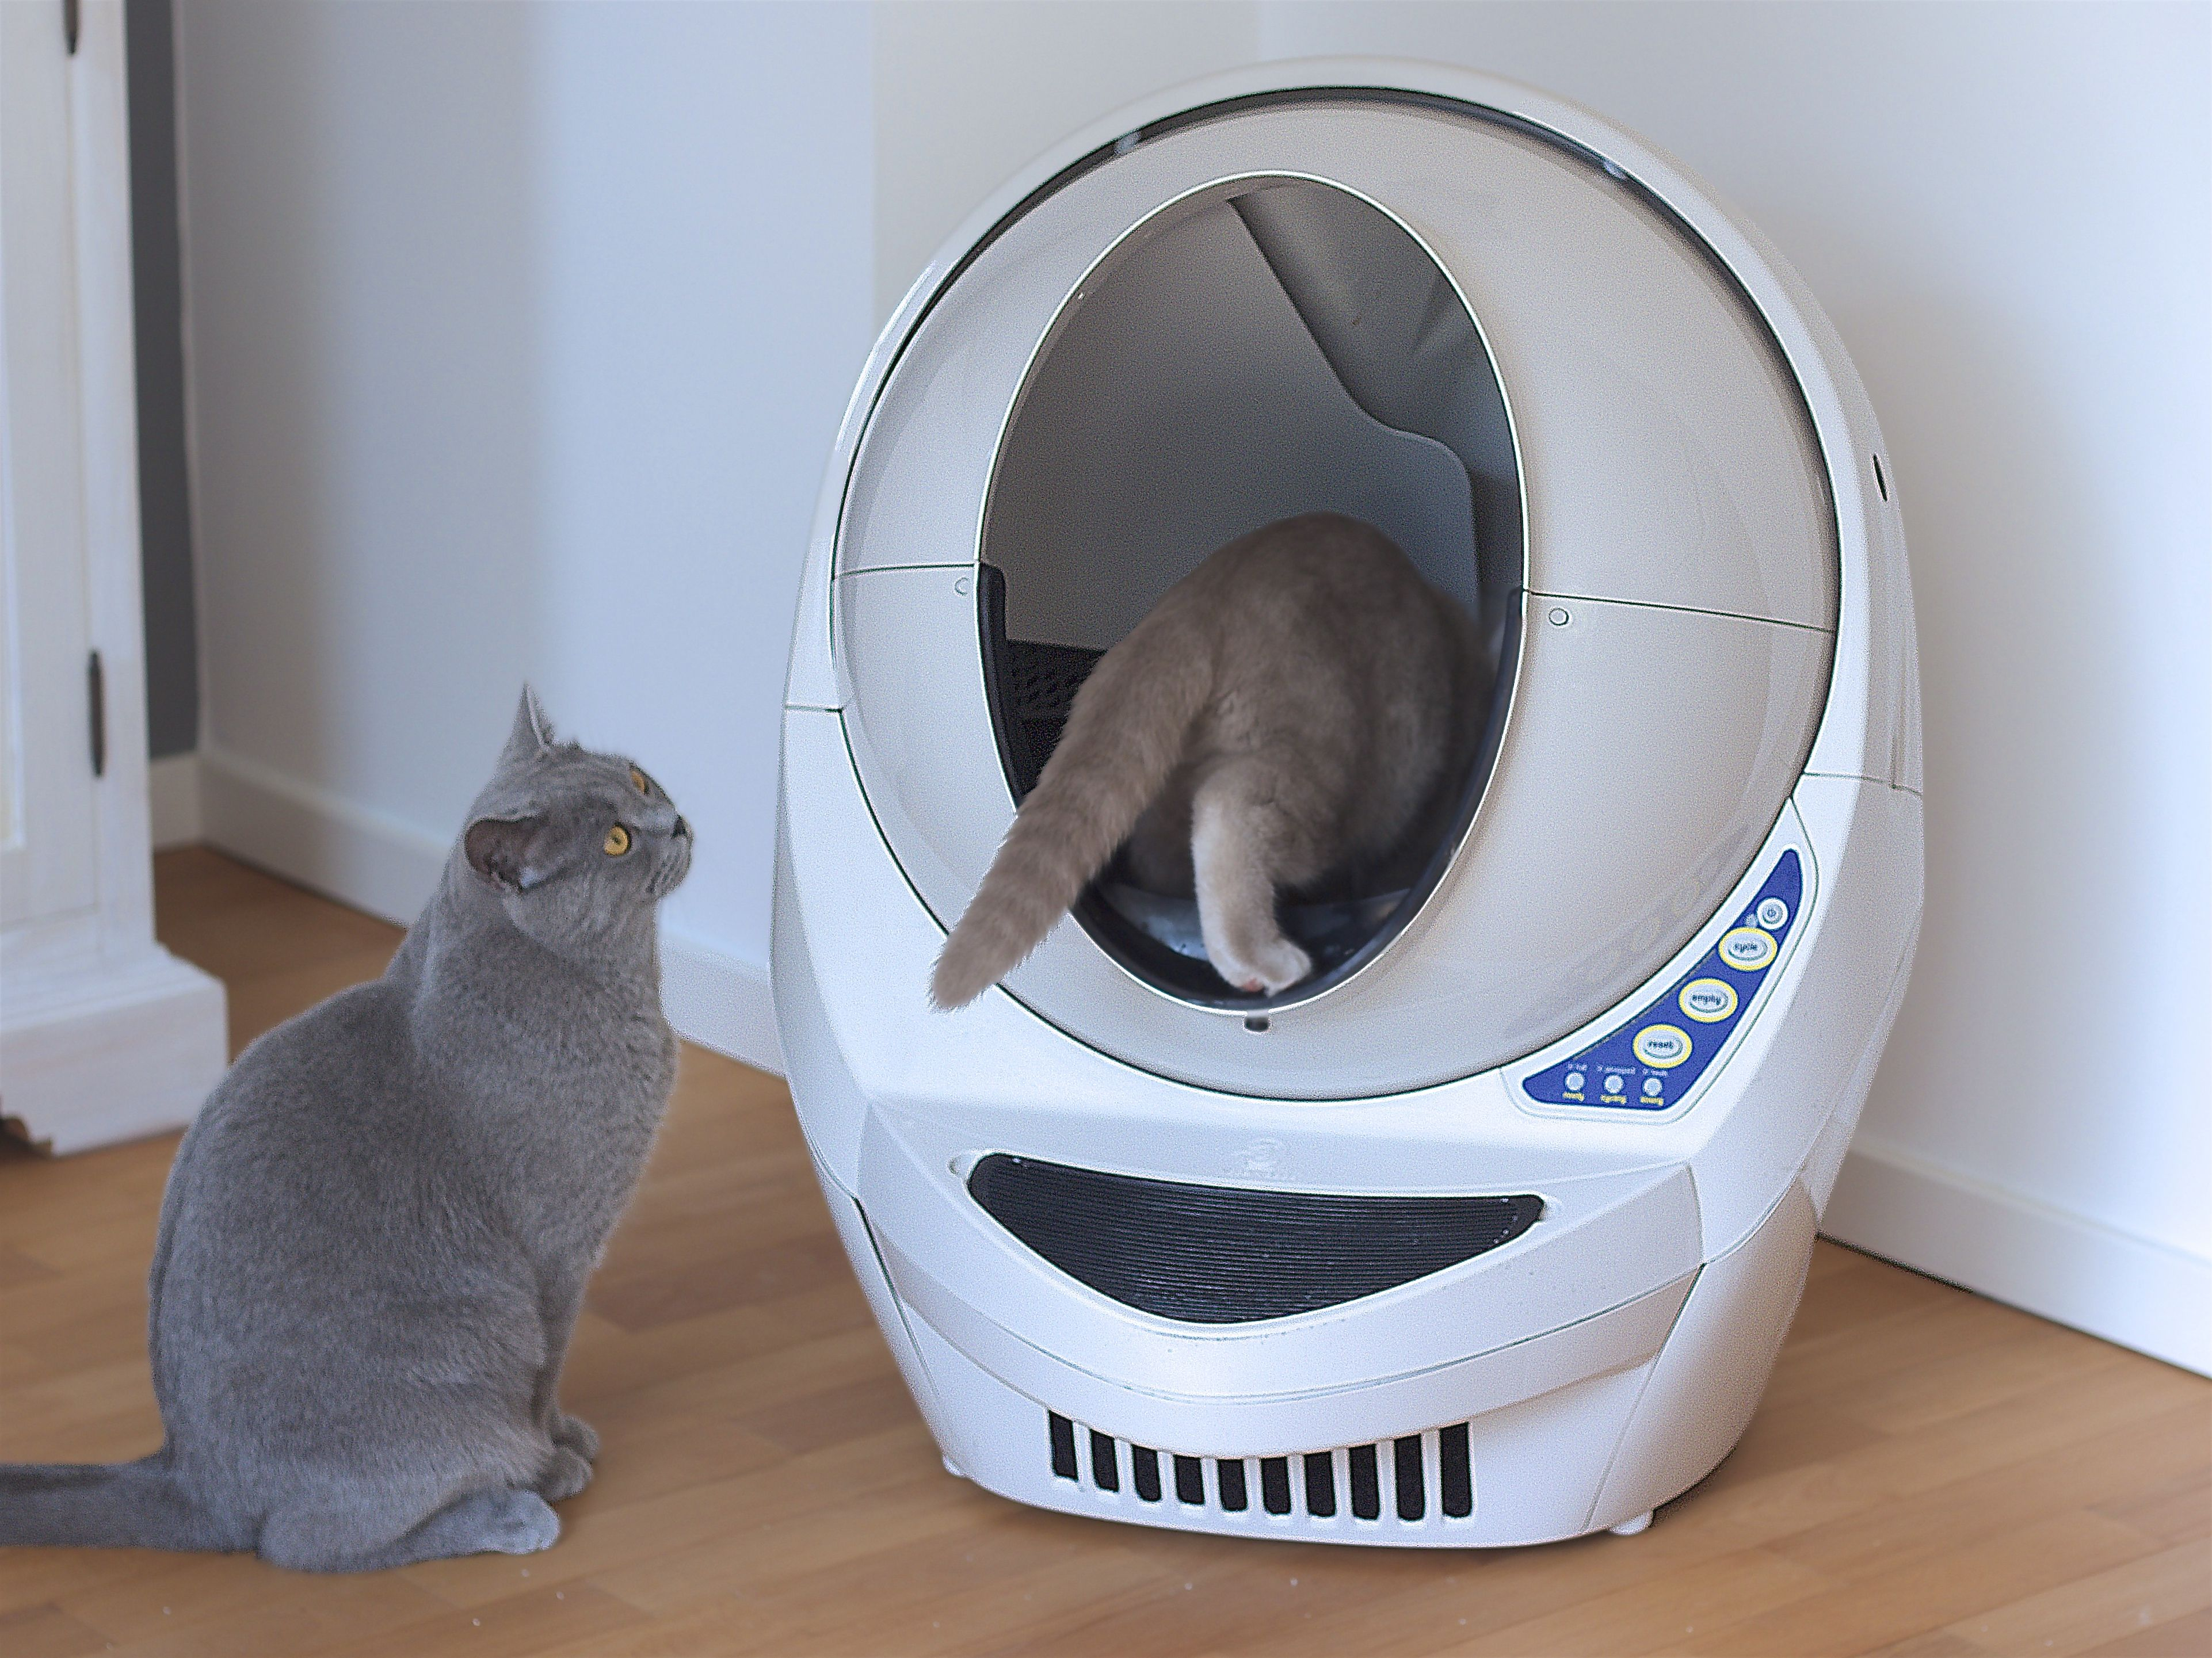 British Shorthairs Litter Robot 3 Cleaning Litter Box Self Cleaning Litter Box Litter Box